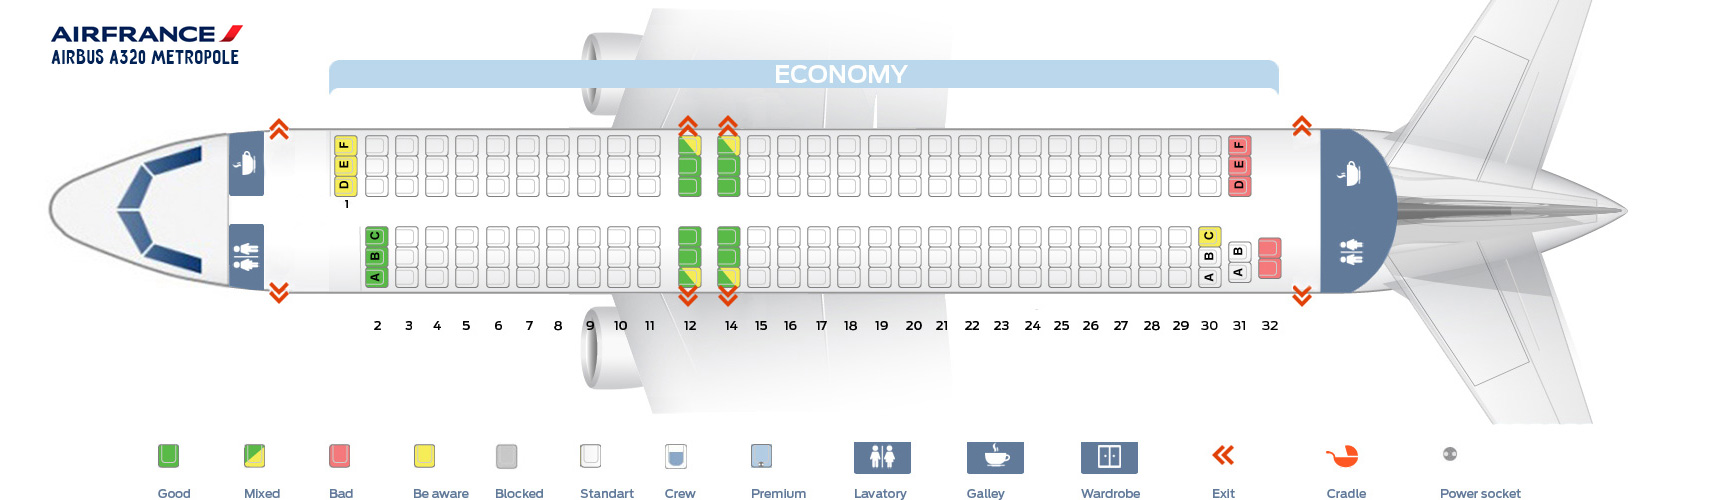 Seat Map Airbus A320 Metropole Air France